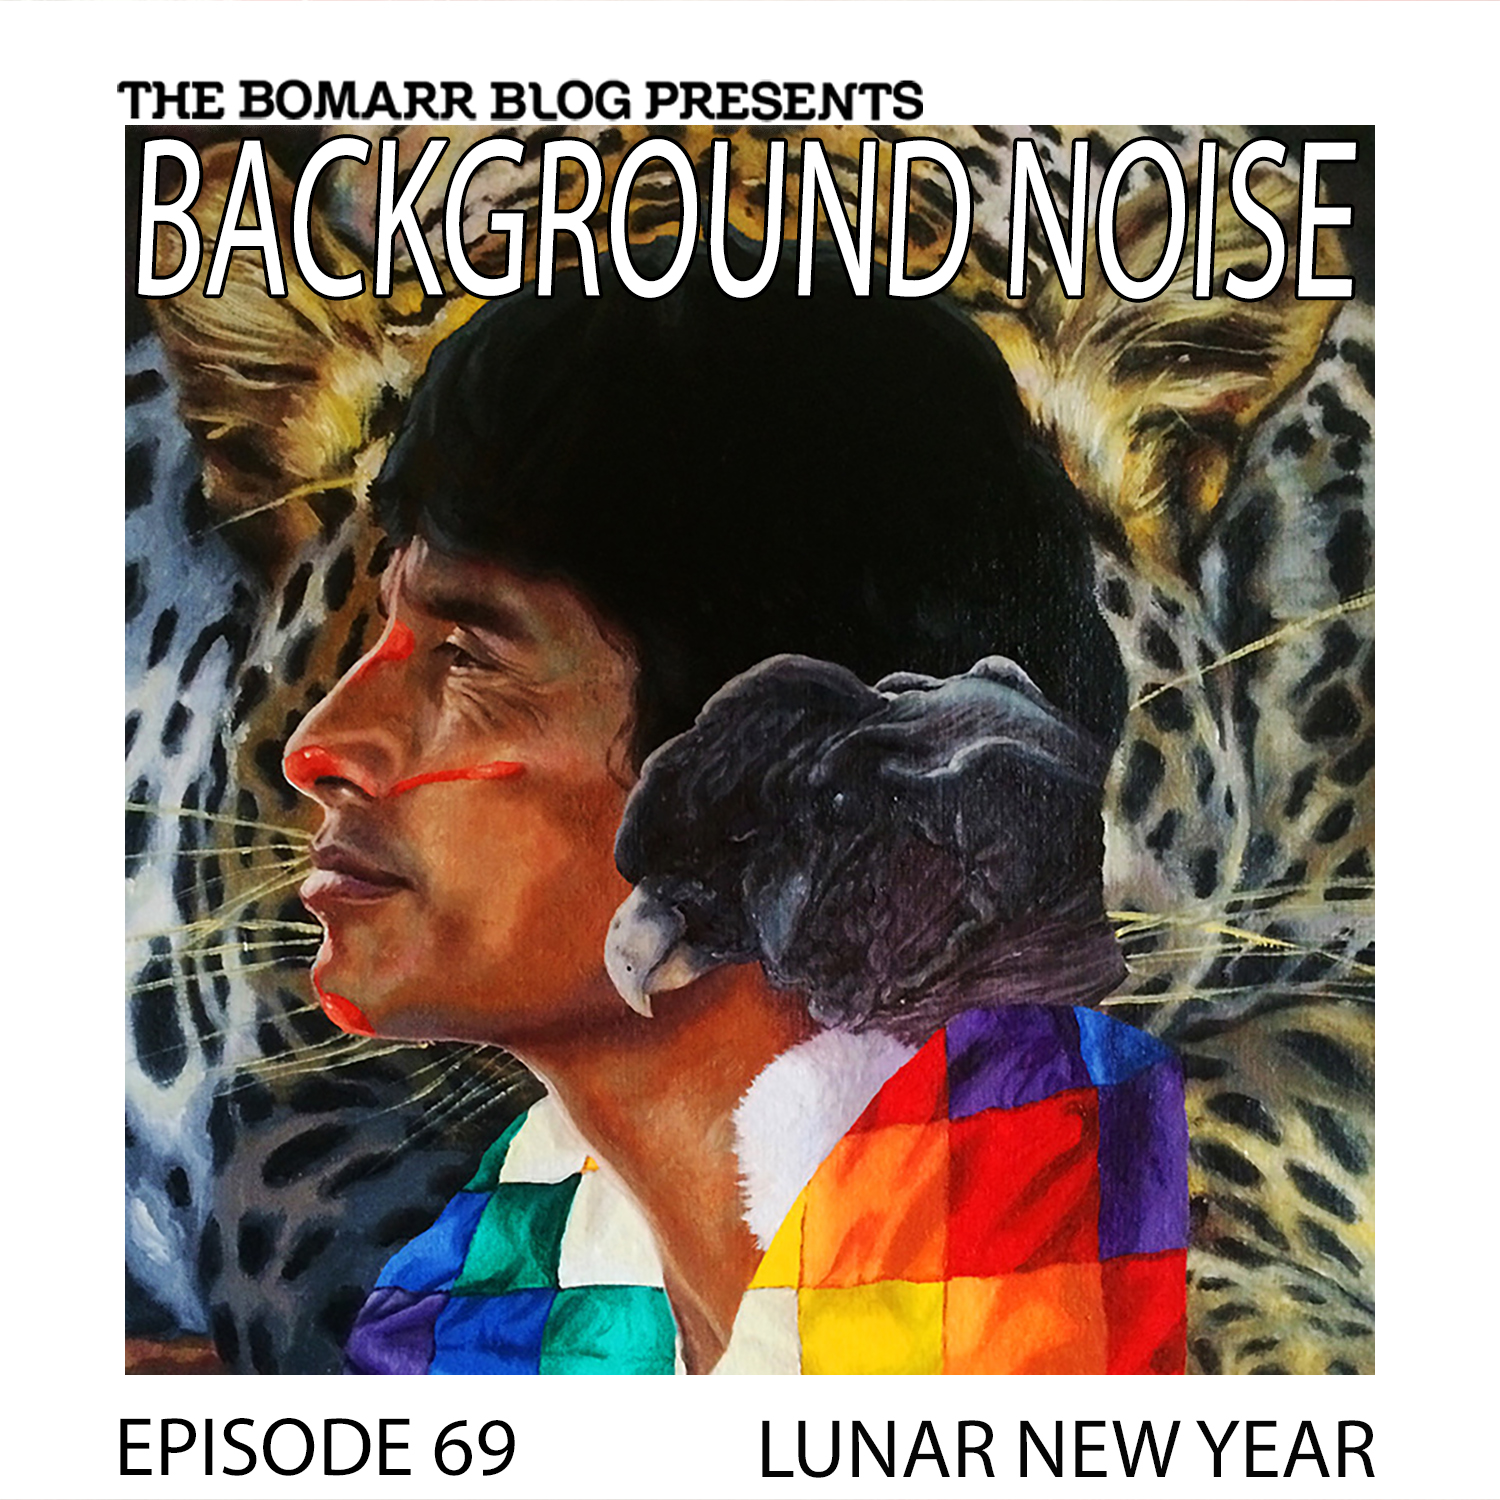 THE BACKGROUND NOISE PODCAST SERIES FOCUSES ON THE MUSIC THAT ARTISTS LISTEN TO WHEN THEY WORK, WHAT MUSIC INSPIRES THEM, OR JUST MUSIC THEY LIKE. THIS WEEK, IN EPISODE 69, THE FOCUS IS ON ARTIST LUNAR NEW YEAR.